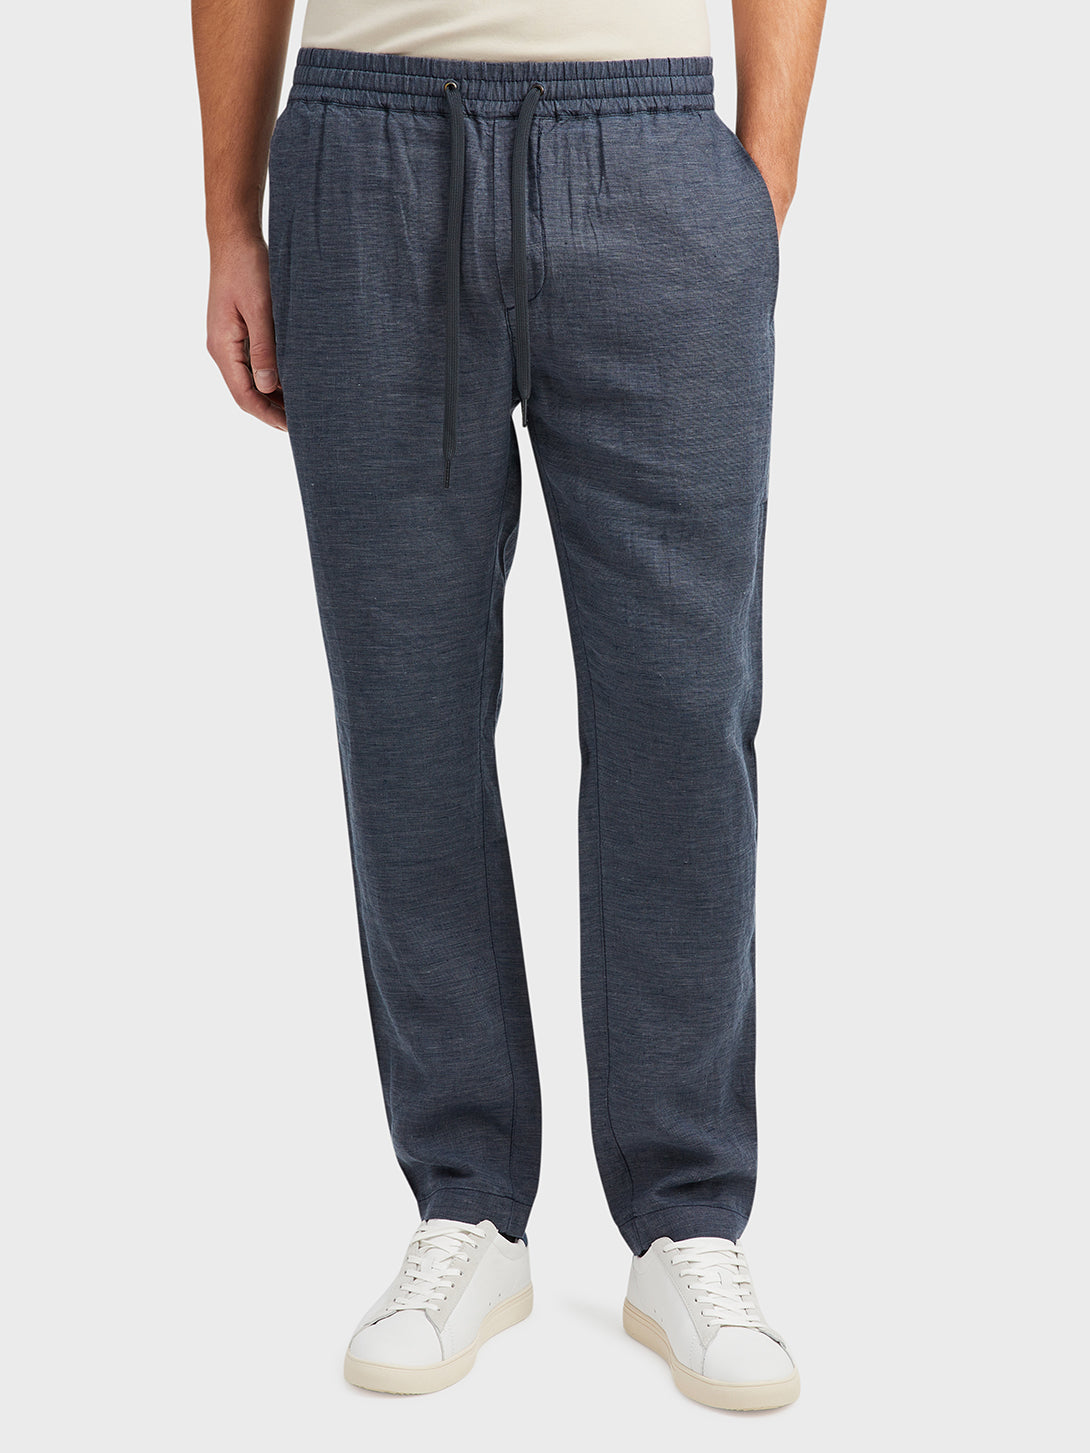 Navy Modern Linen Pants Men's linen pants ONS Clothing